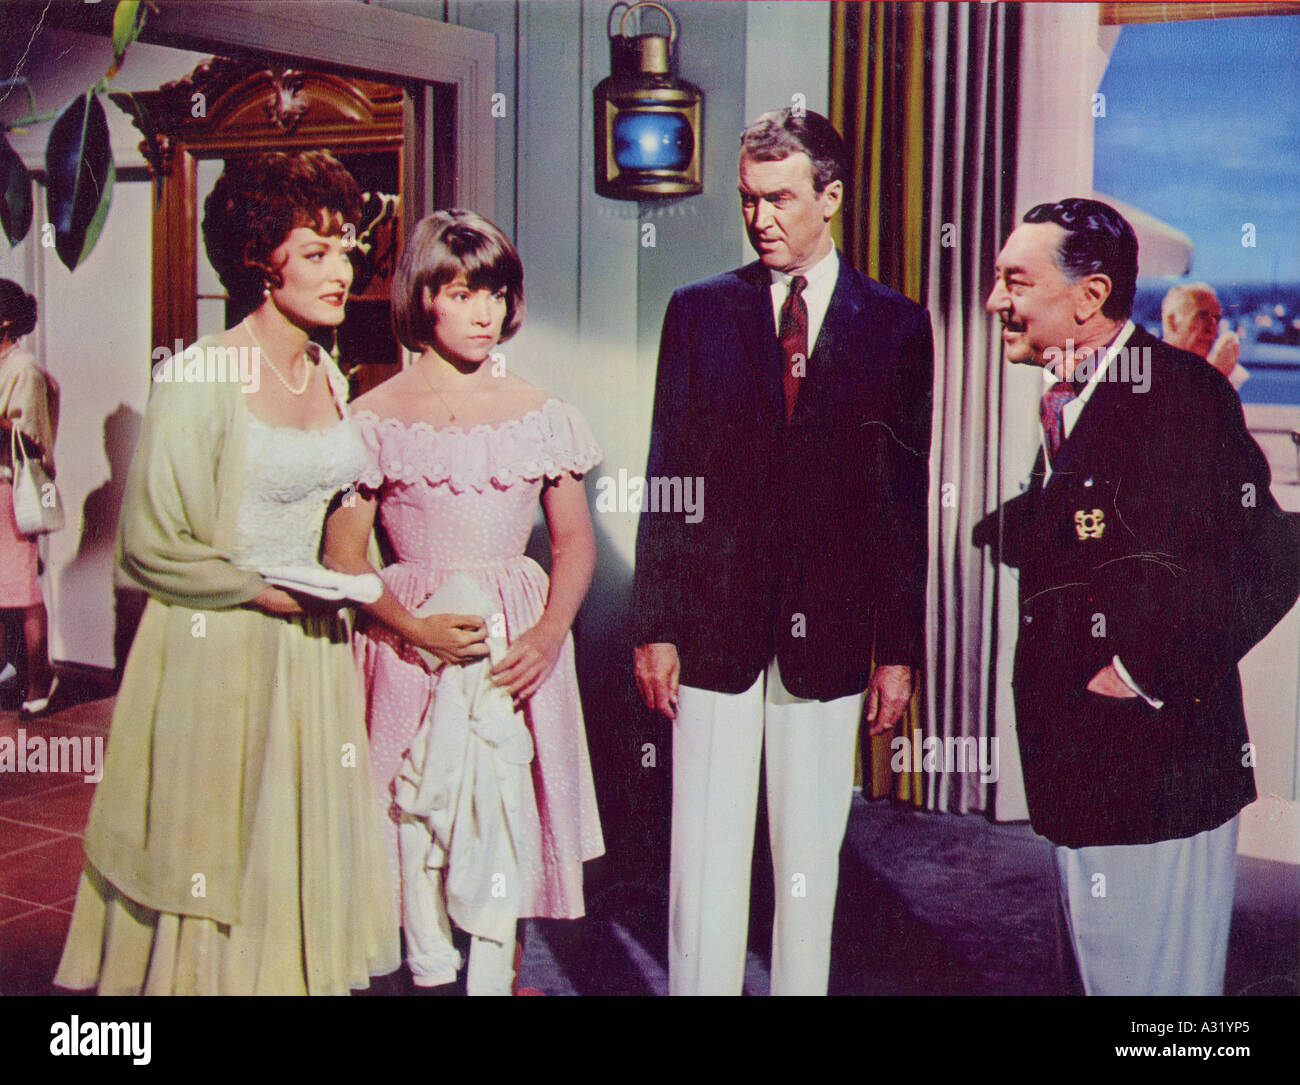 MR HOBBS TAKES A VACATION 1962 TCFG film  with Maureen O'Hara at left and James Stewart second from right - Stock Image